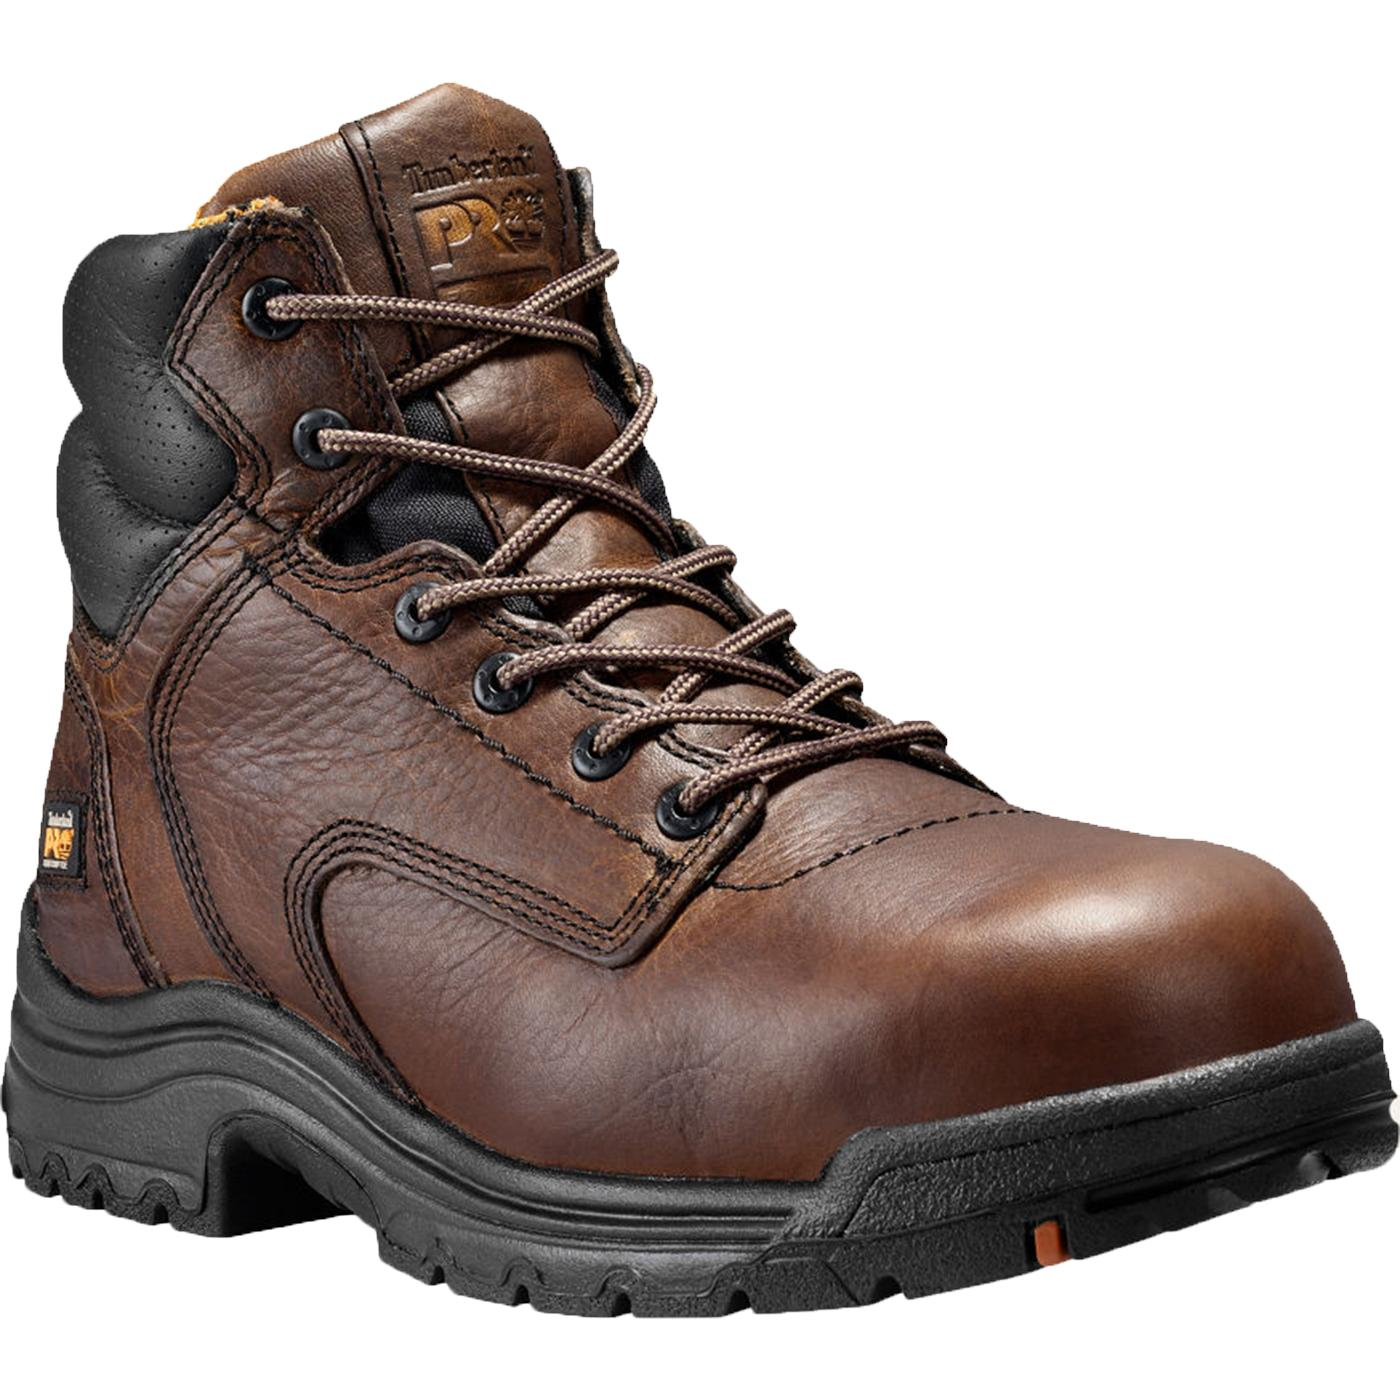 Timberland PRO TiTan Composite Toe Work Boot, #50508 Timberland Pro